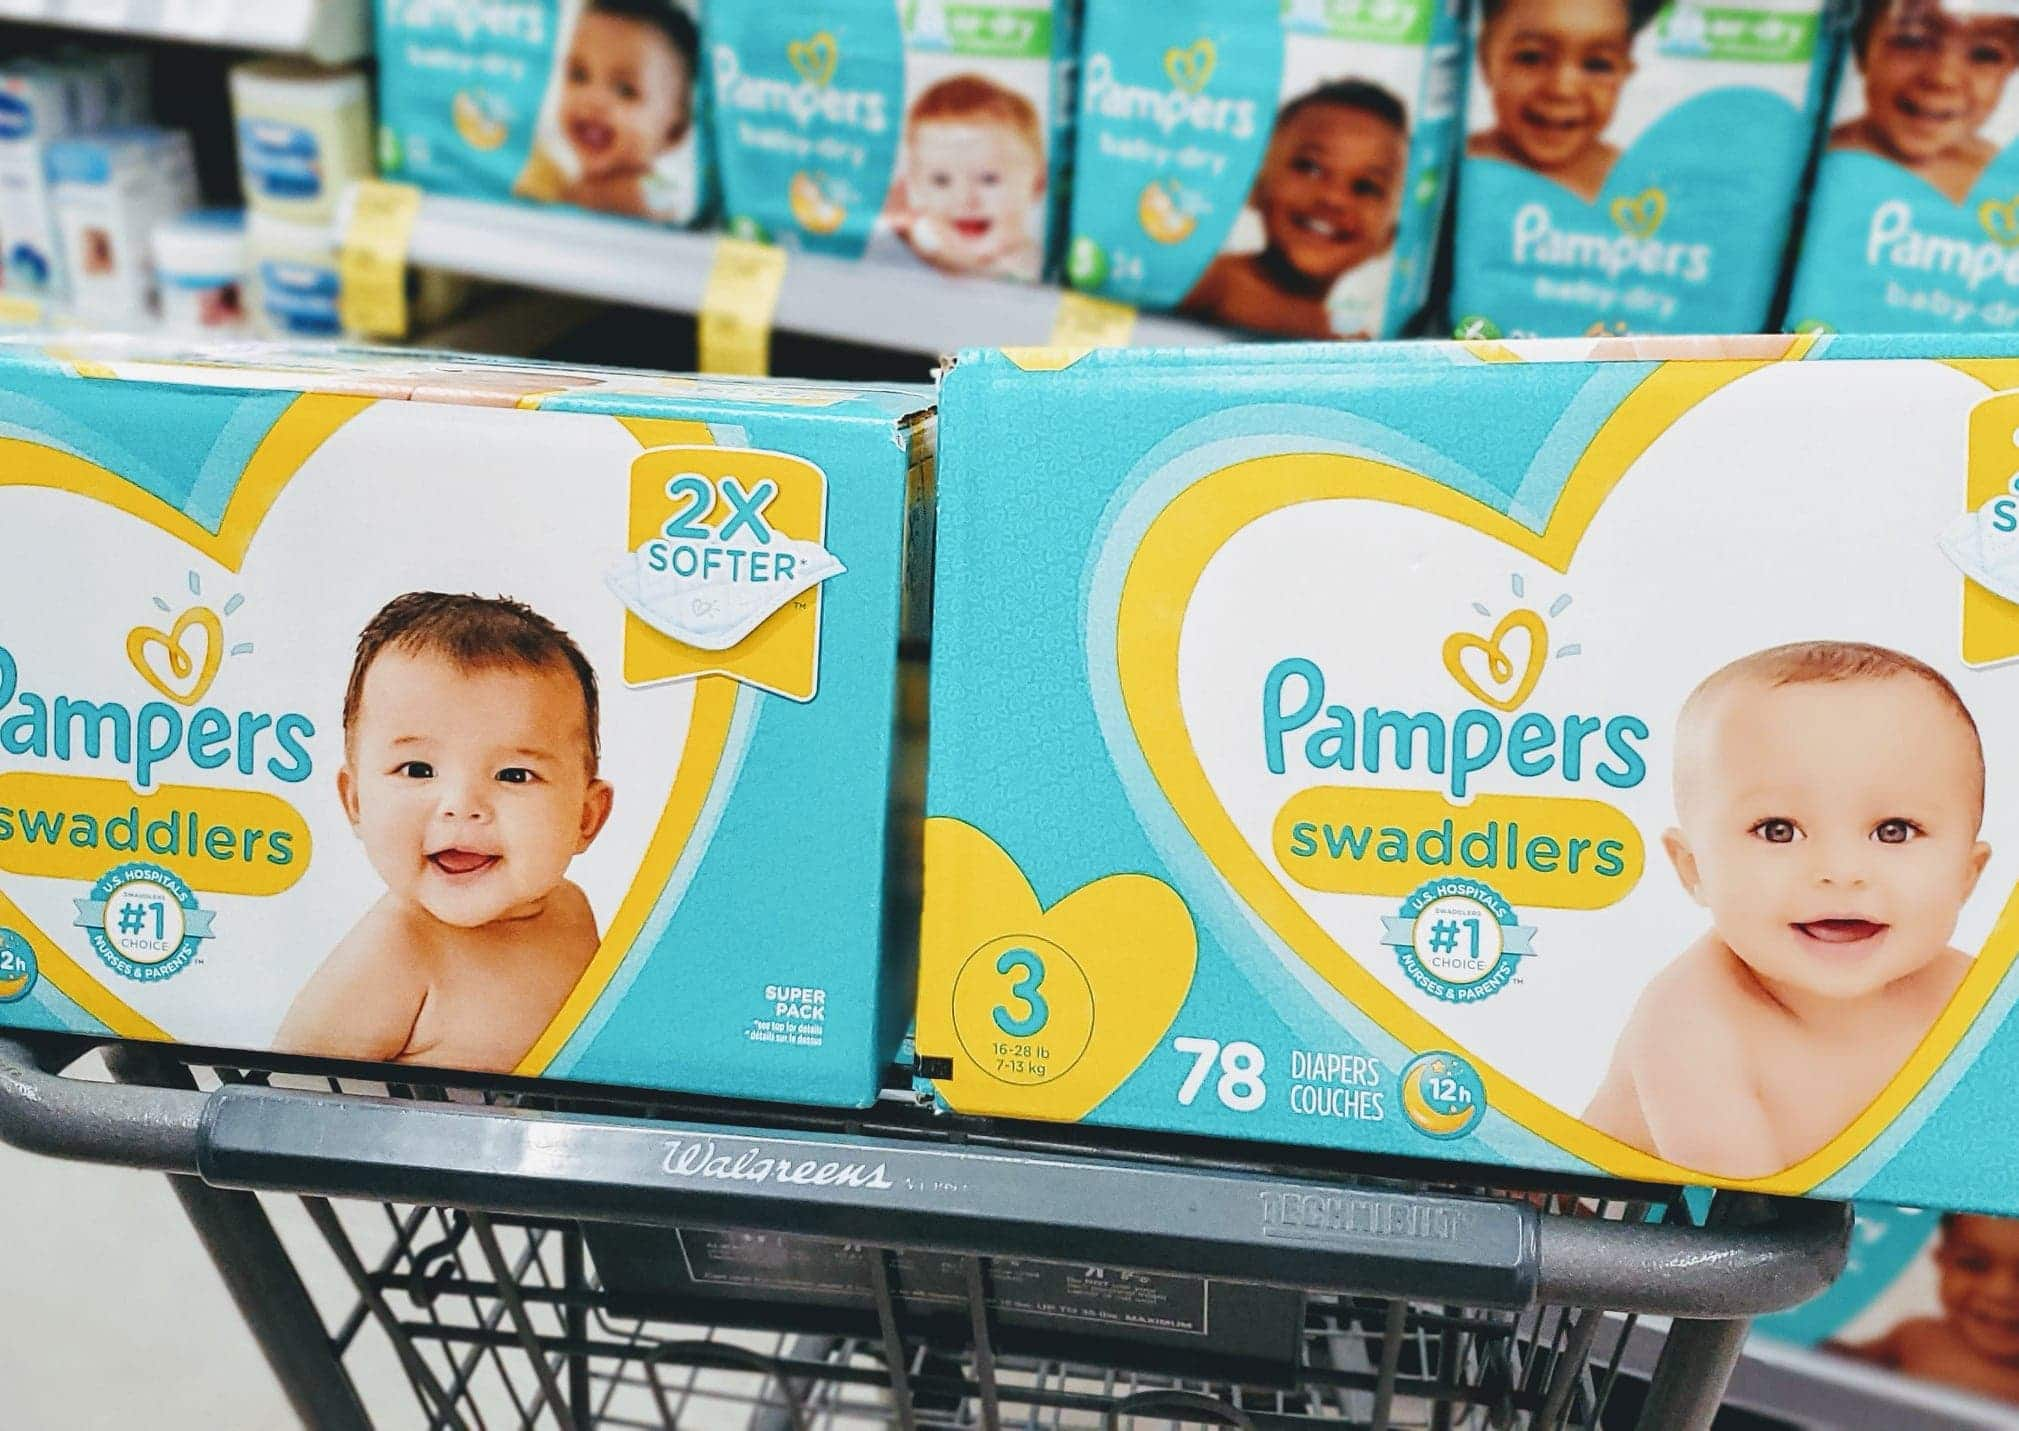 New Pampers Huggies Coupons On Amazon Hot Deals